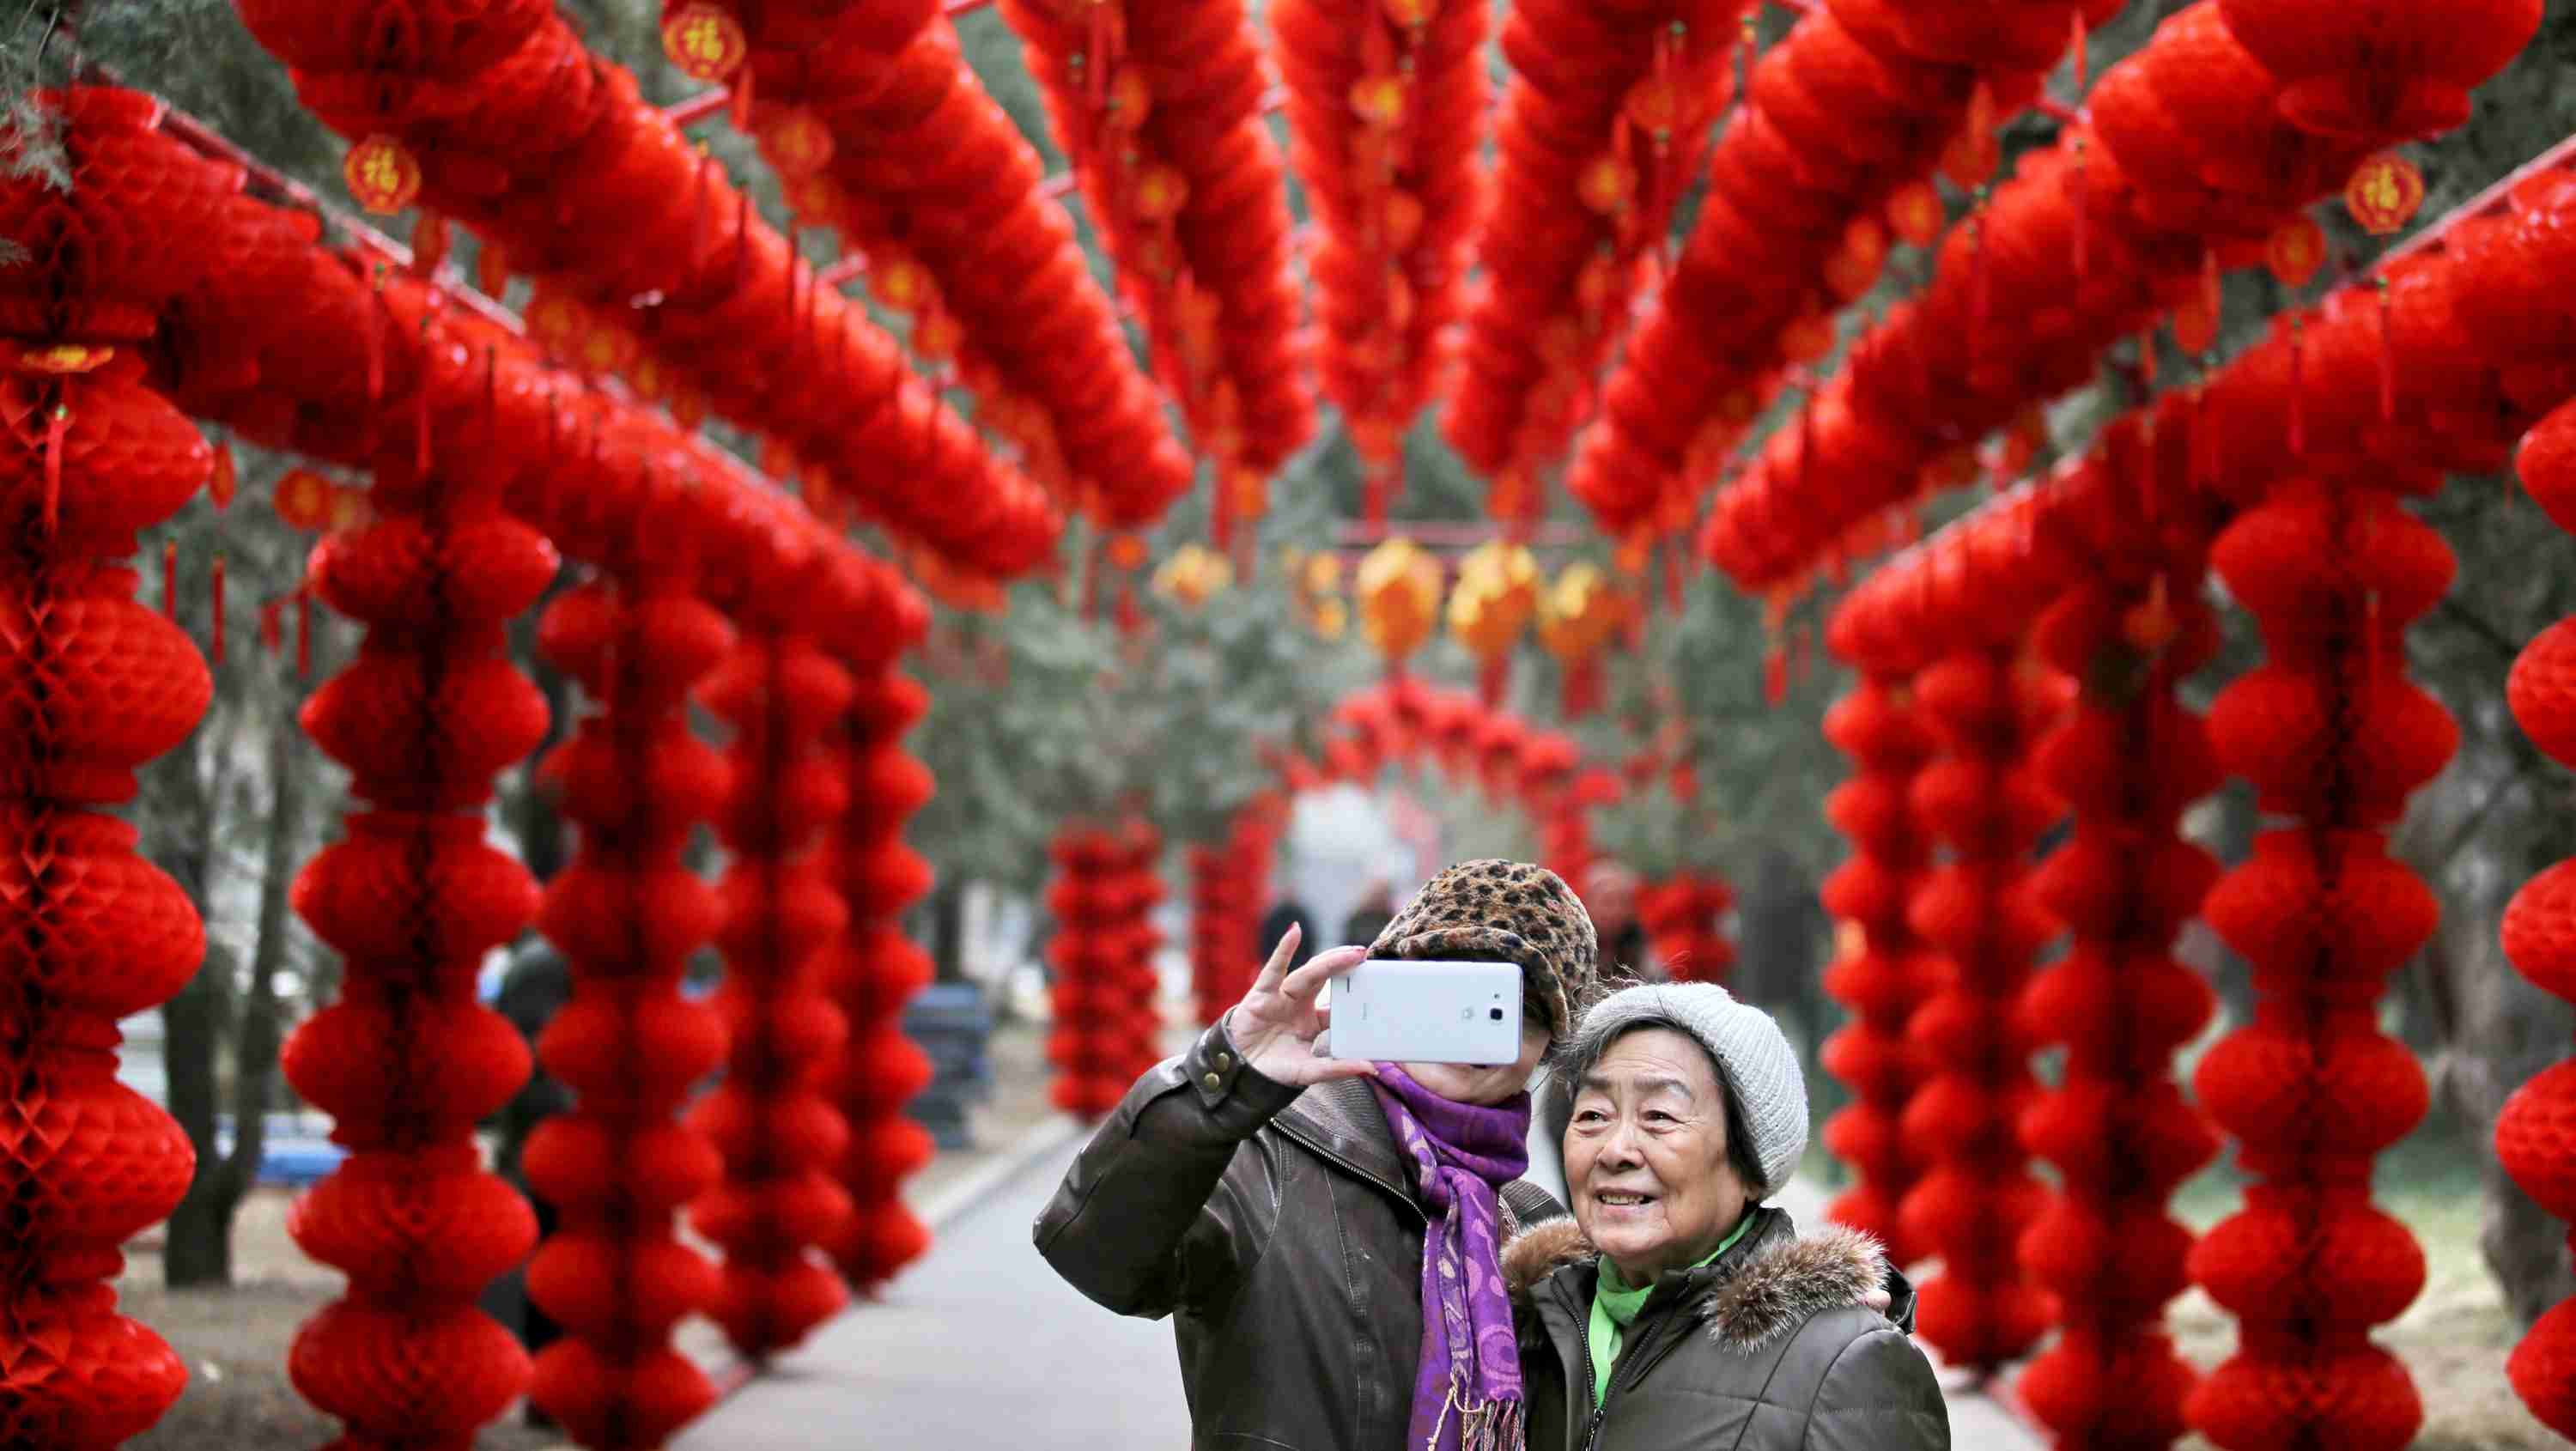 Visitors take a selfie in front of lantern decorations installed to prepare for Spring Festival celebrations in a temple fair at a park, in Beijing February 6, 2015. The Chinese Lunar New Year on Feb. 19 will welcome the Year of the Sheep (also known as the Year of the Goat or Ram). Picture taken February 6, 2015. REUTERS/Stringer (CHINA - Tags: ANNIVERSARY SOCIETY TPX IMAGES OF THE DAY) CHINA OUT. NO COMMERCIAL OR EDITORIAL SALES IN CHINA - RTR4OKYL